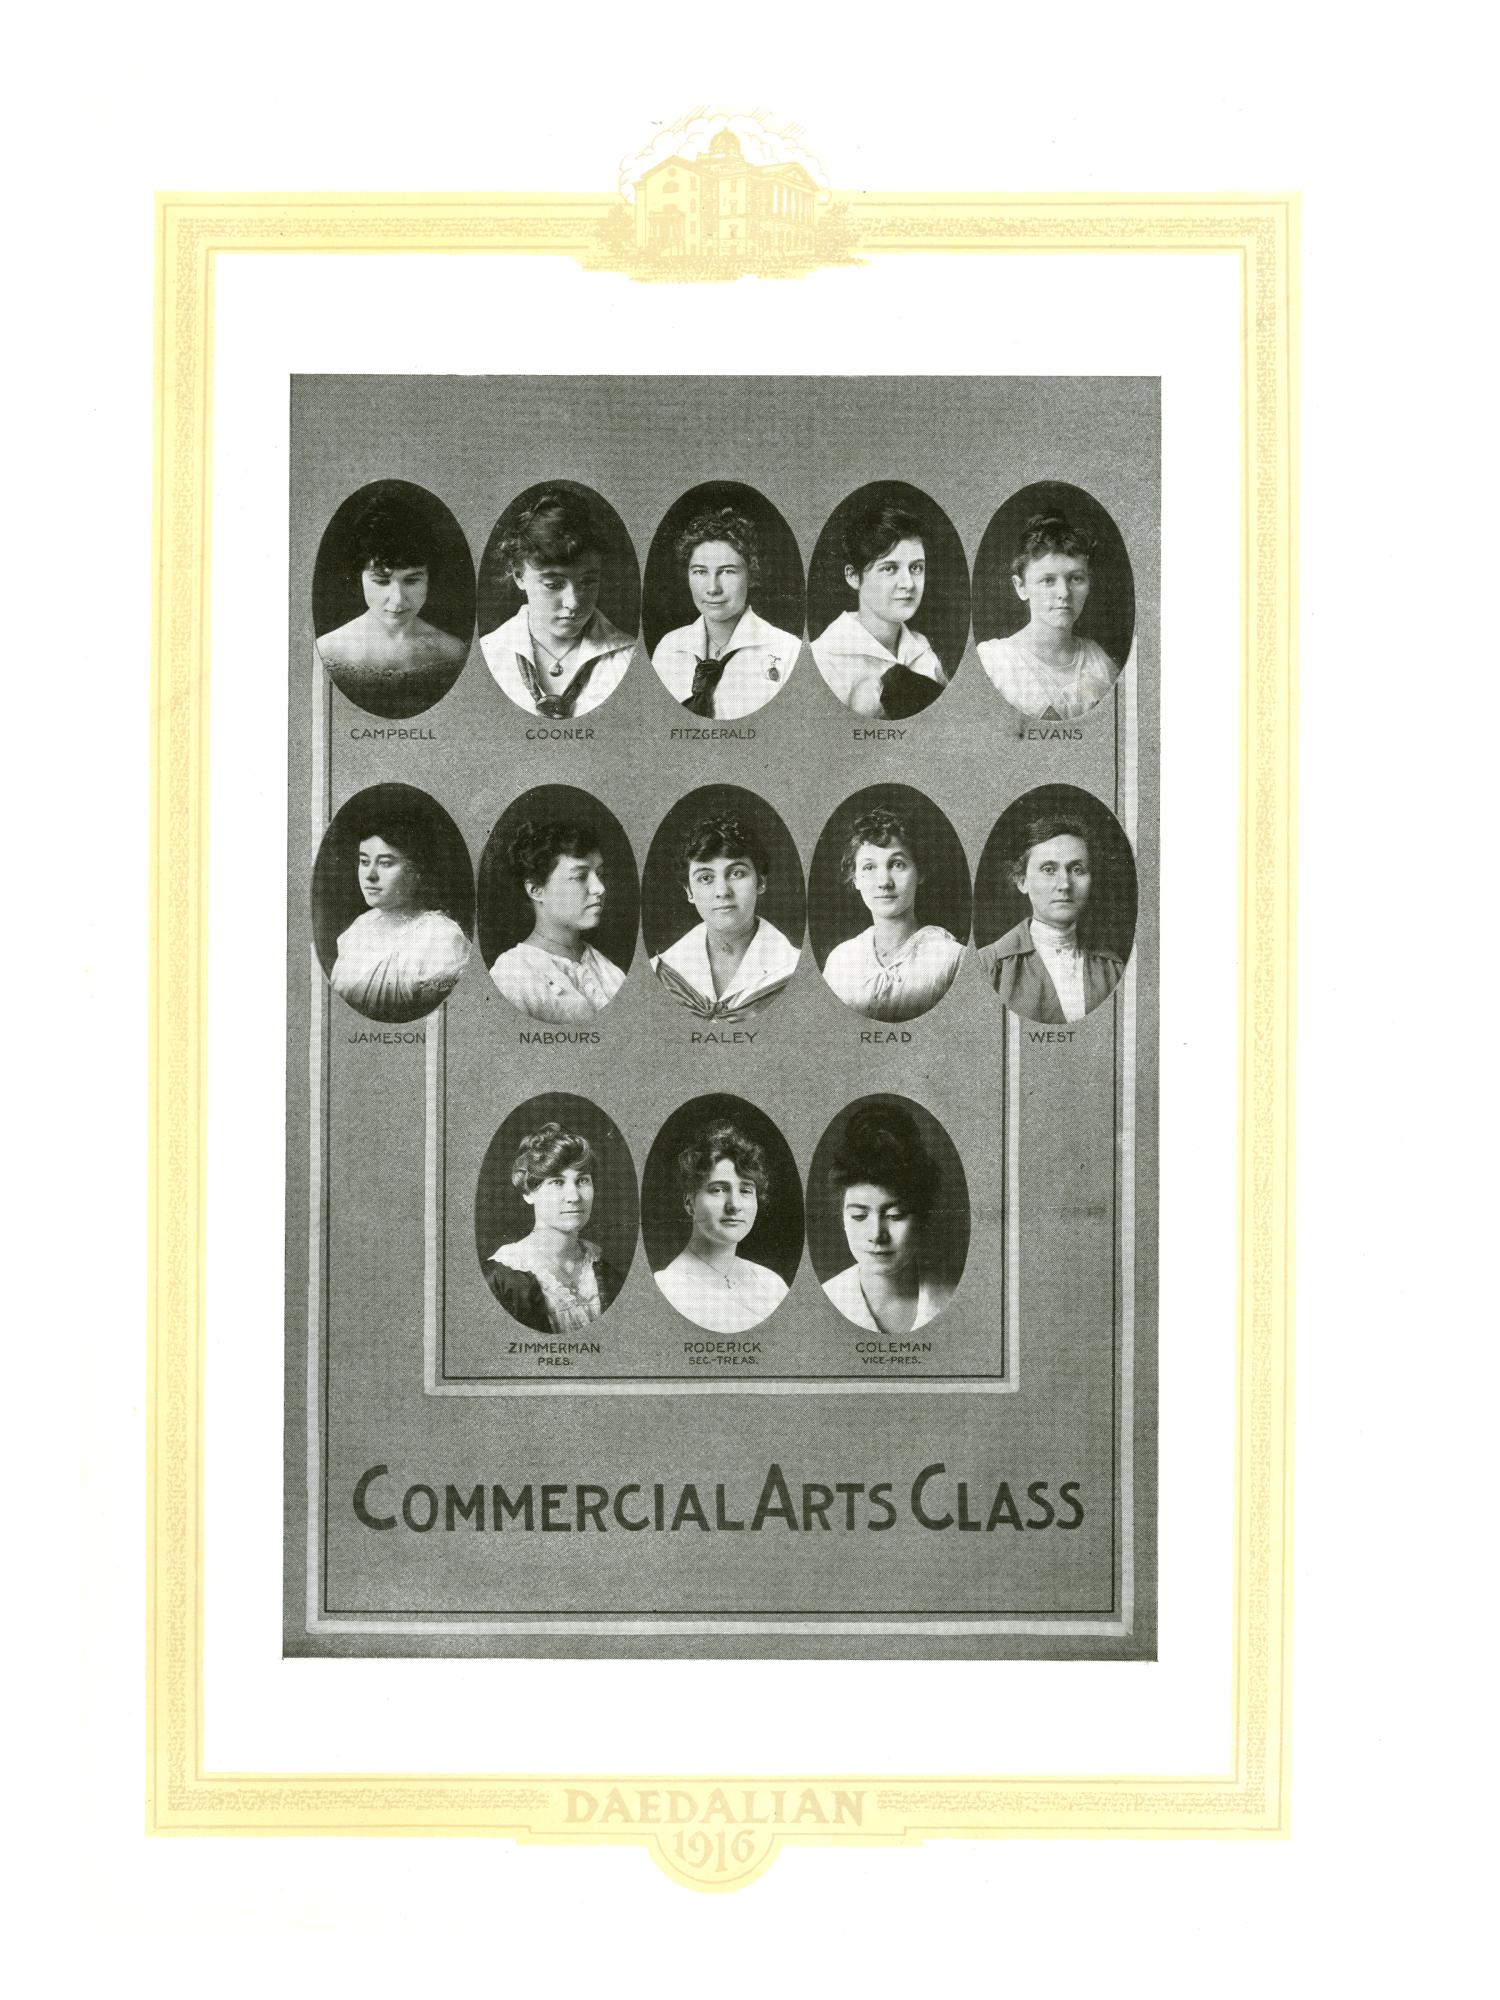 The Daedalian, Yearbook of the College of Industrial Arts, 1916                                                                                                      117